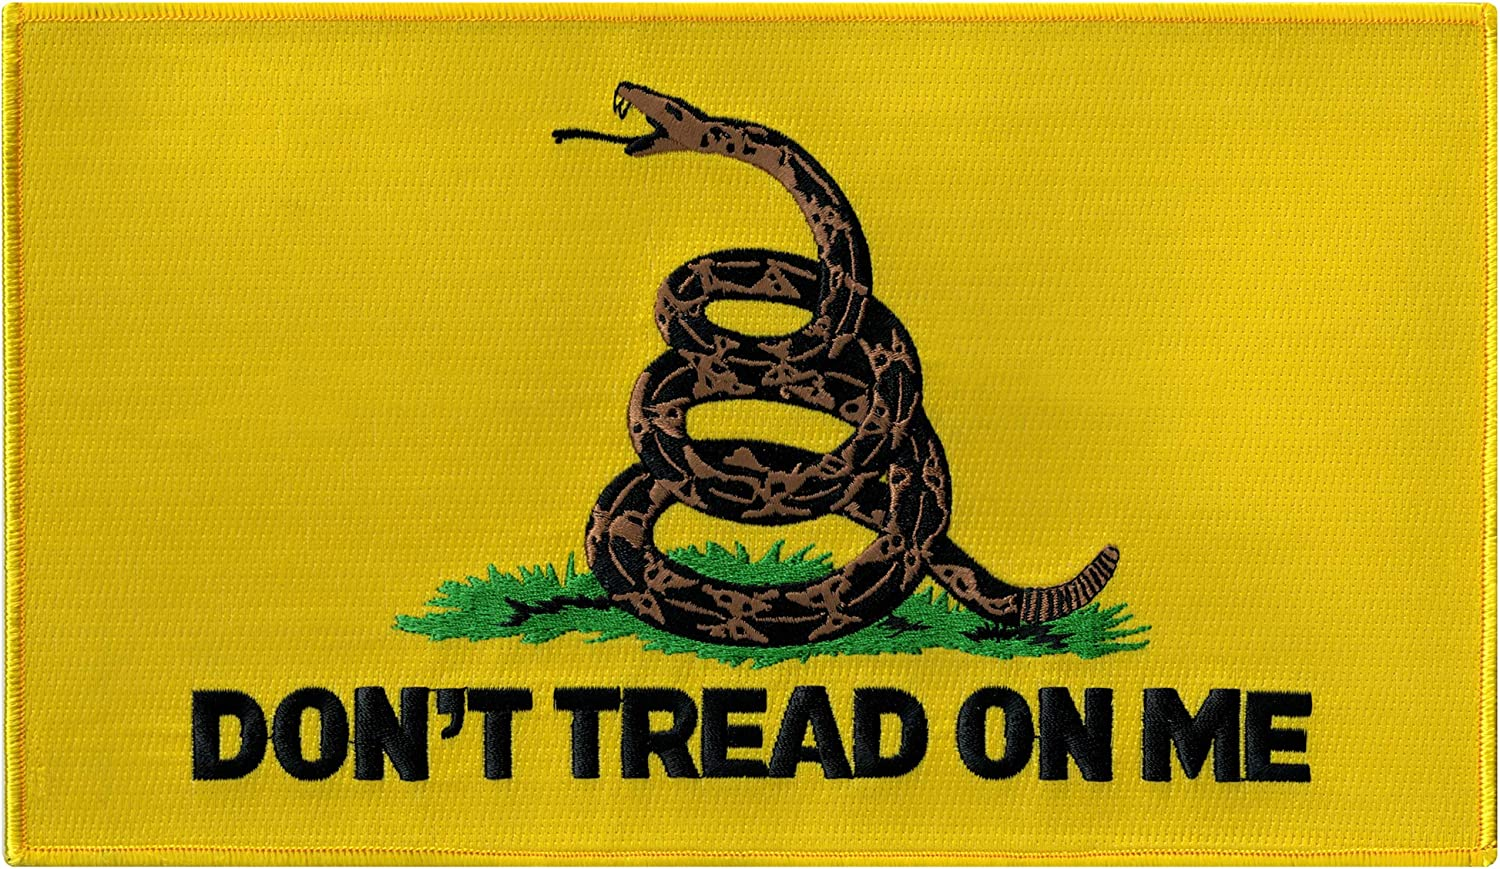 TREAD ON ME AND DIE GADSDEN FLAG PATCH DON/'T embroidered iron-on TEA PARTY NEW